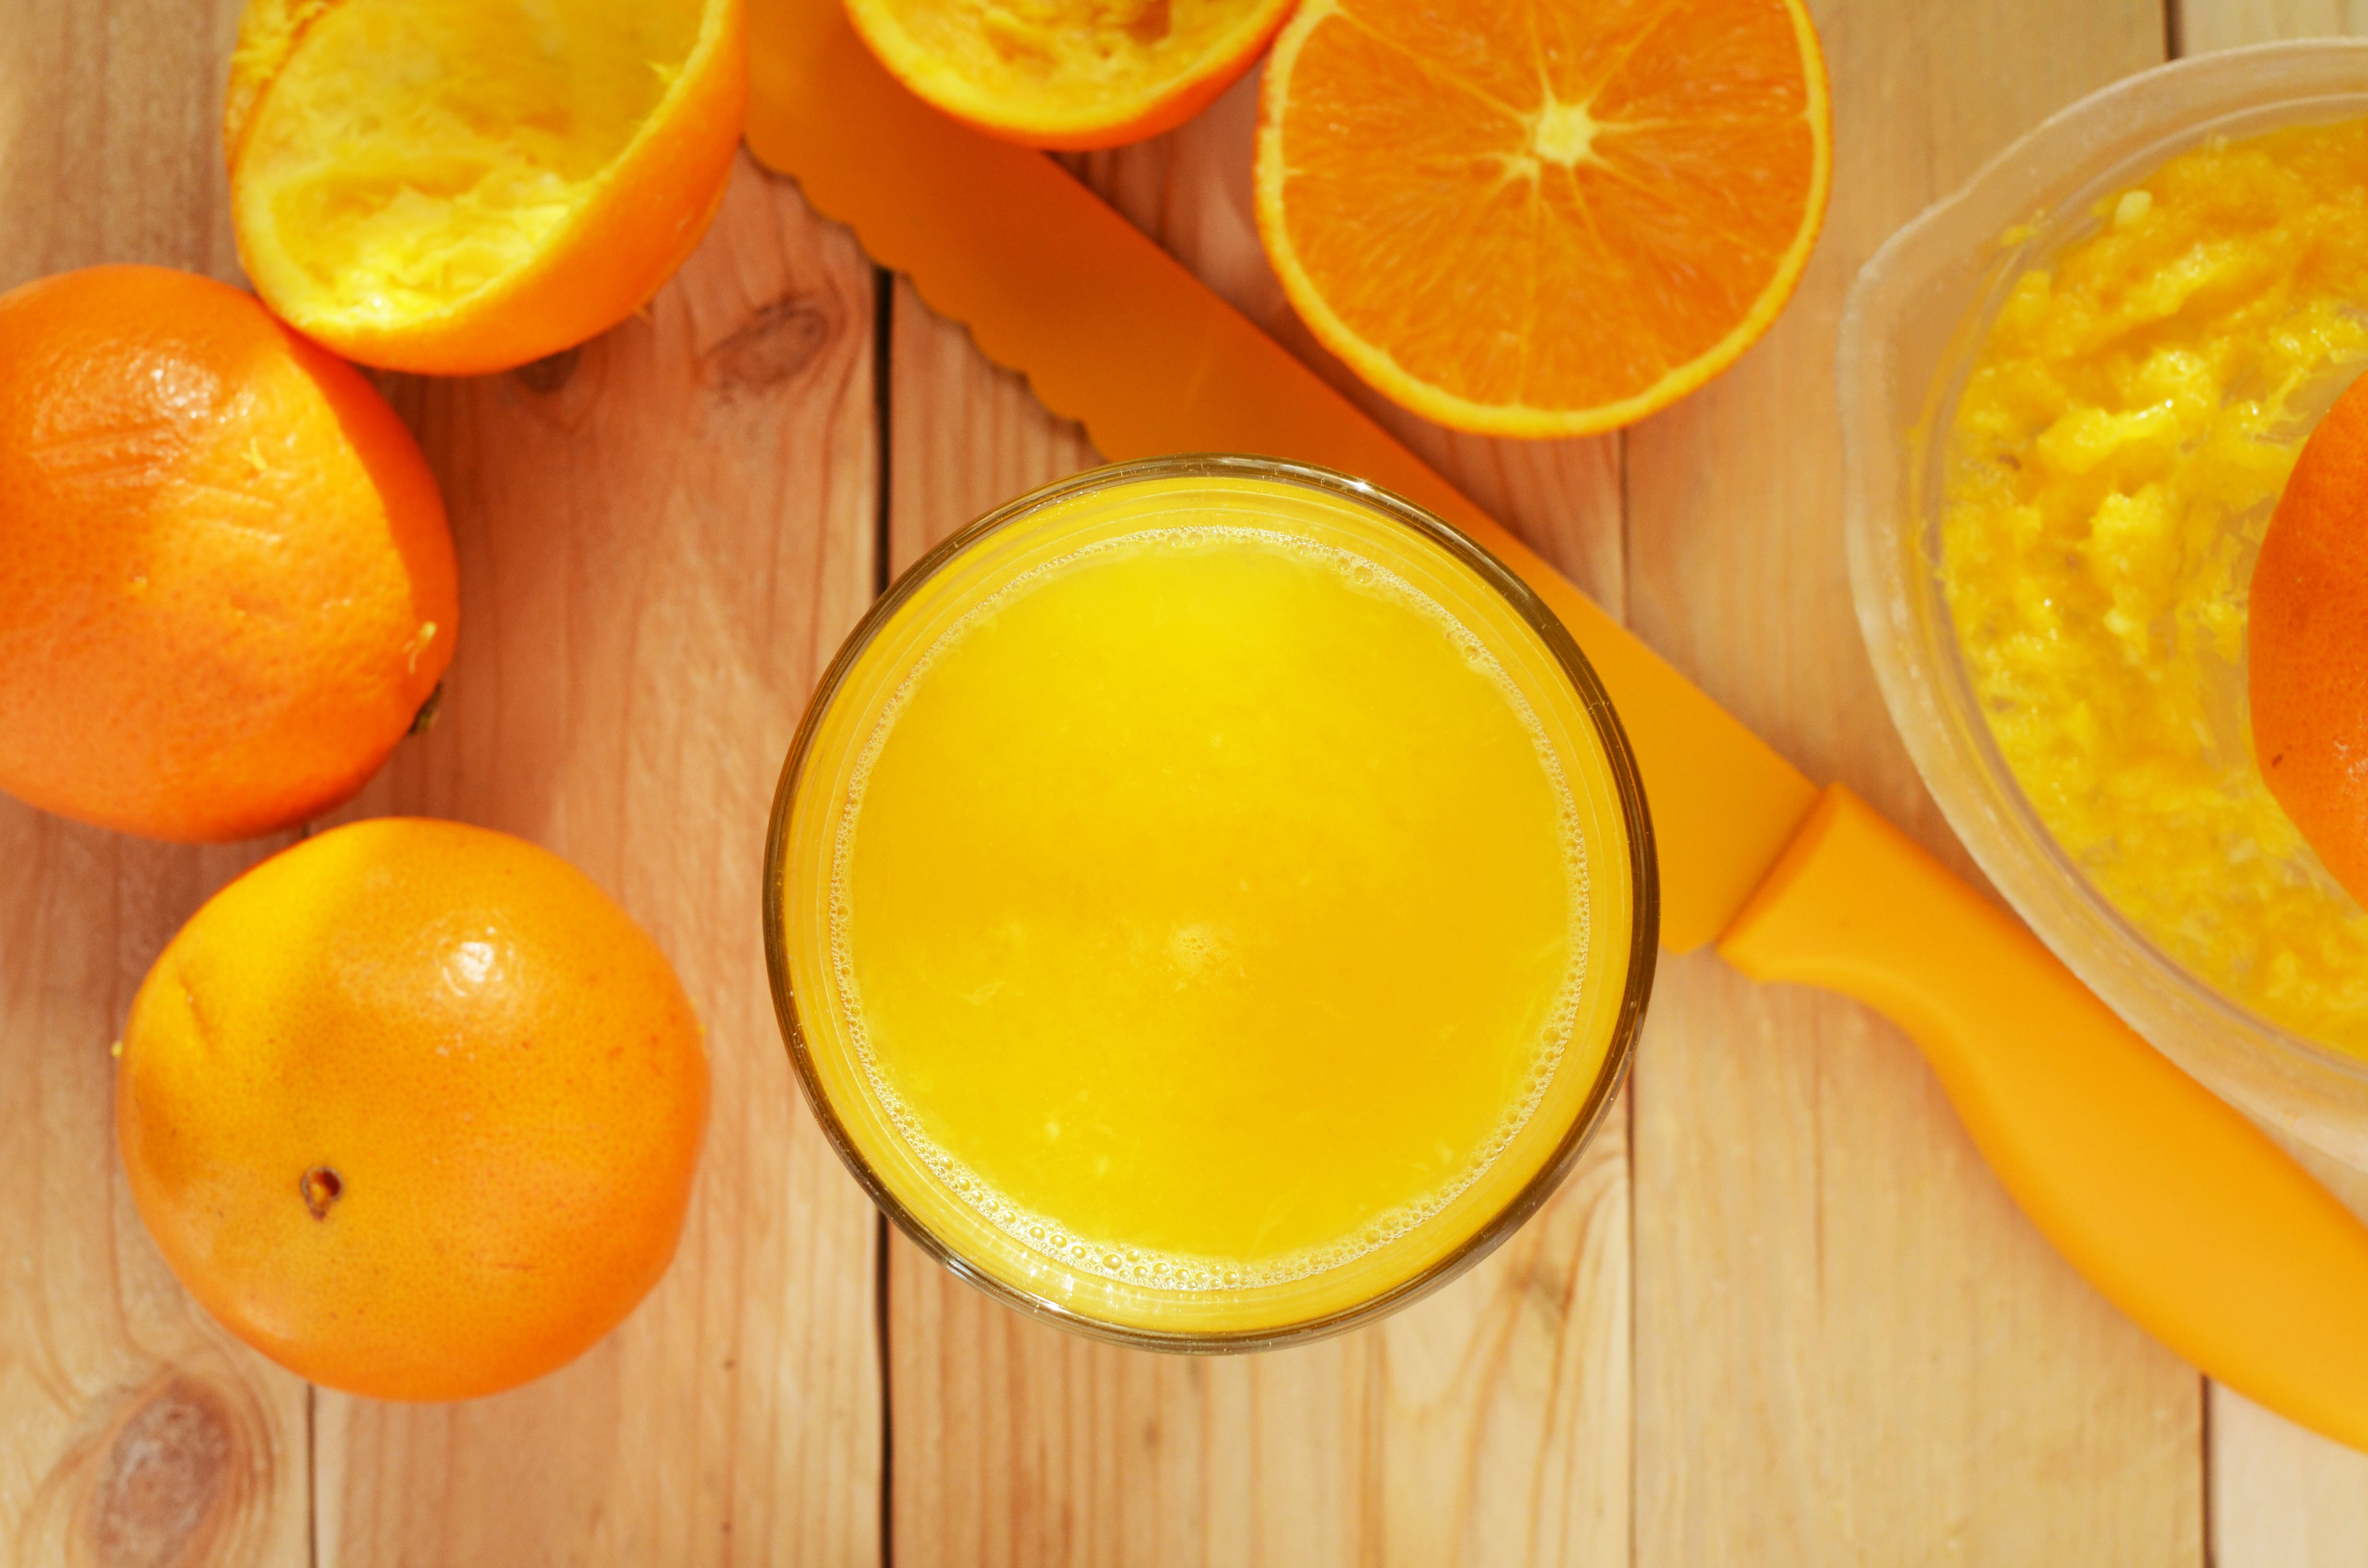 Orange Juice in Clear Drinking Glass